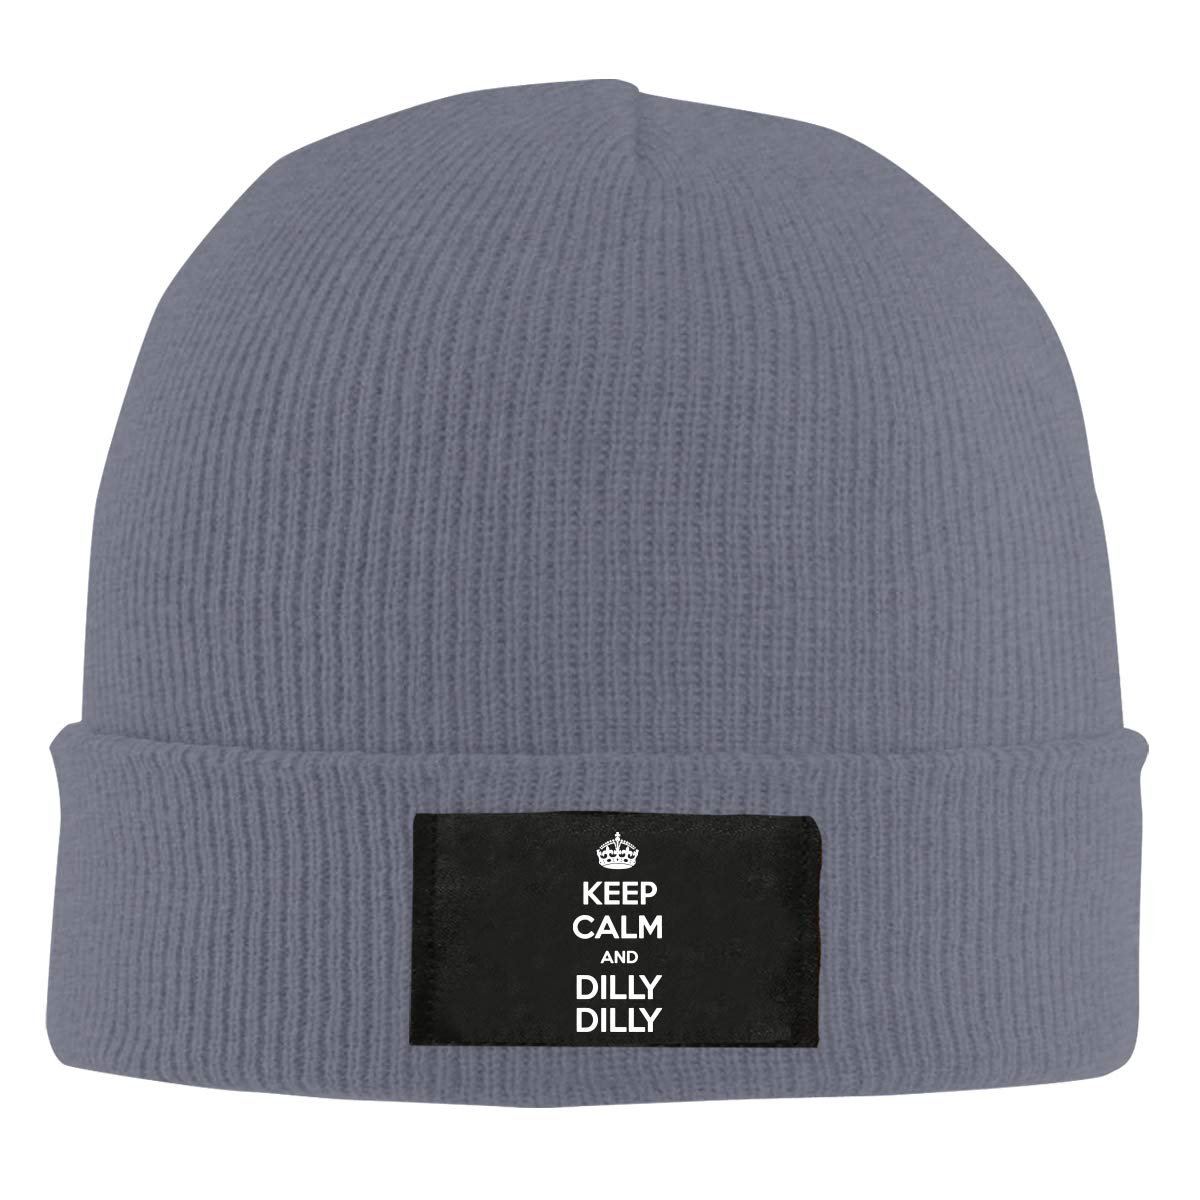 Keep Calm and Dilly Dilly Men /& Womens Knitted Hat Soft Fleece Beanie Hat